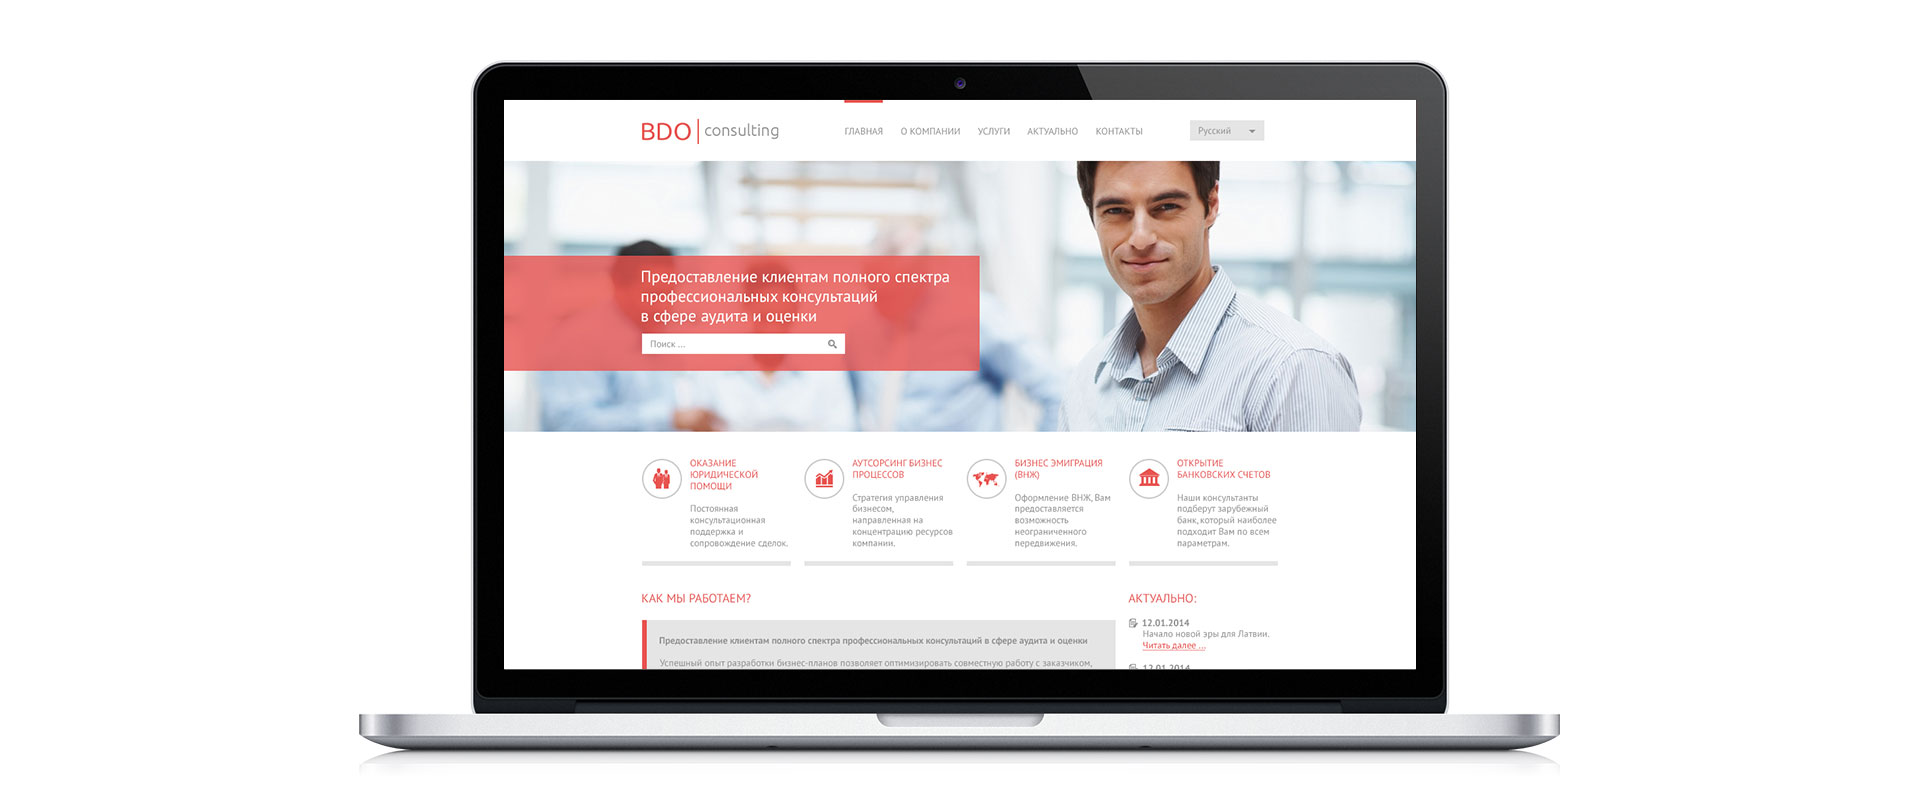 bdo-website-2